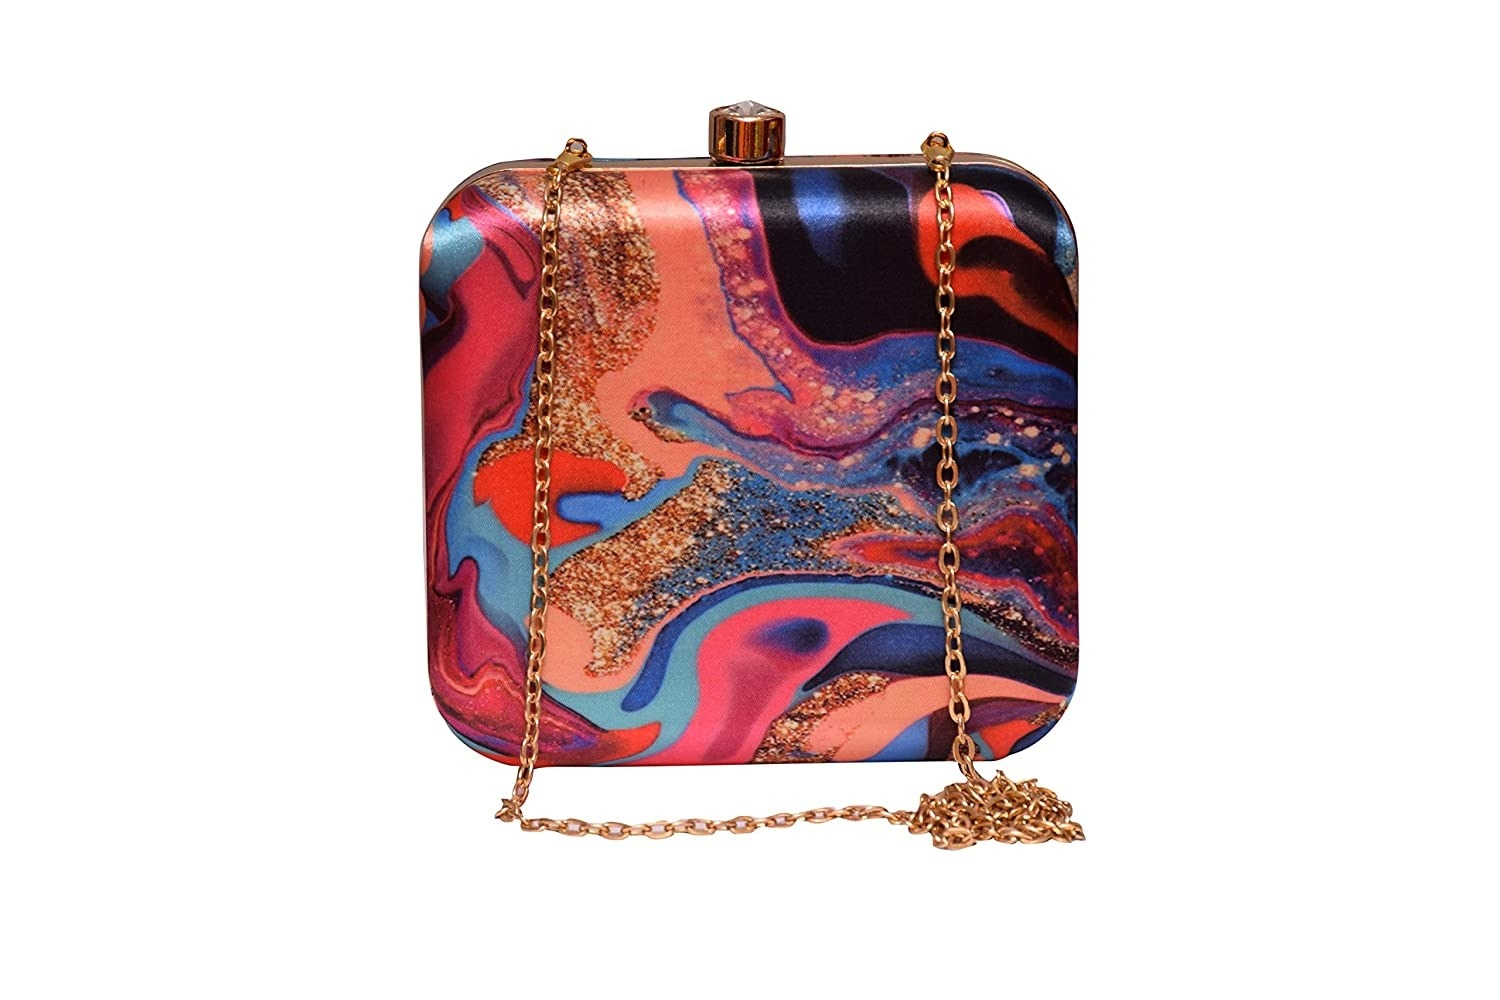 A clutch with a golden handle and different patterns on it with glitter